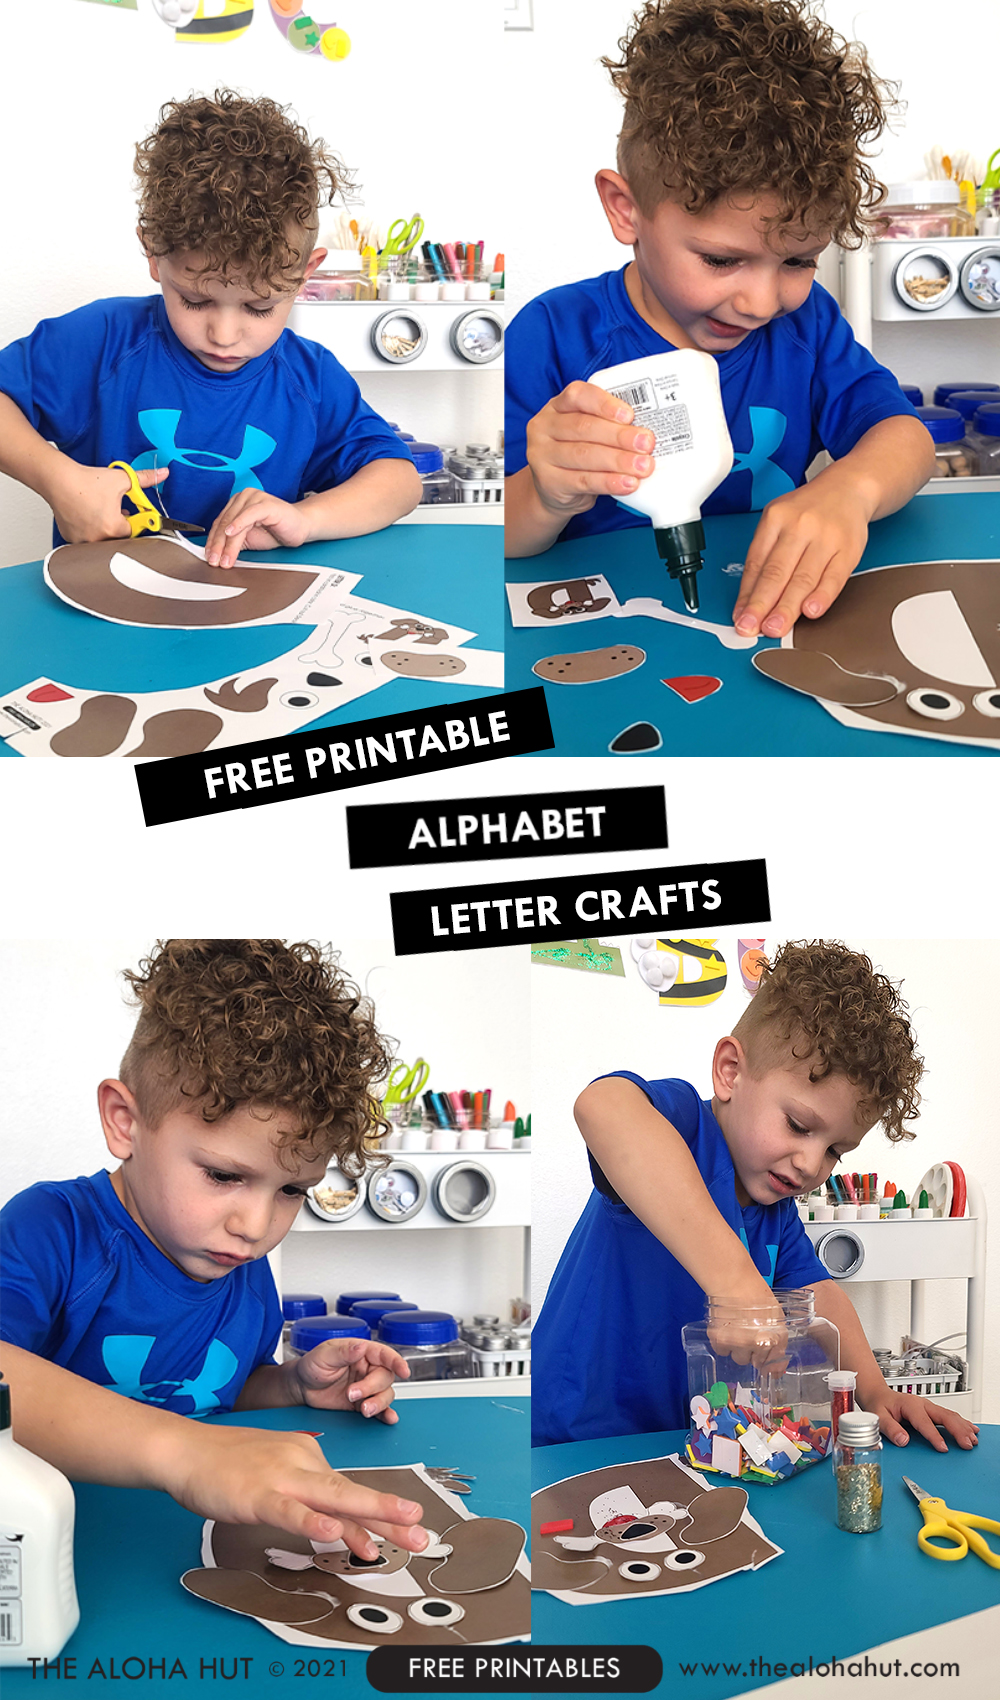 Alphabet Letter Crafts - Letter D - free printable 2 by the Aloha Hut